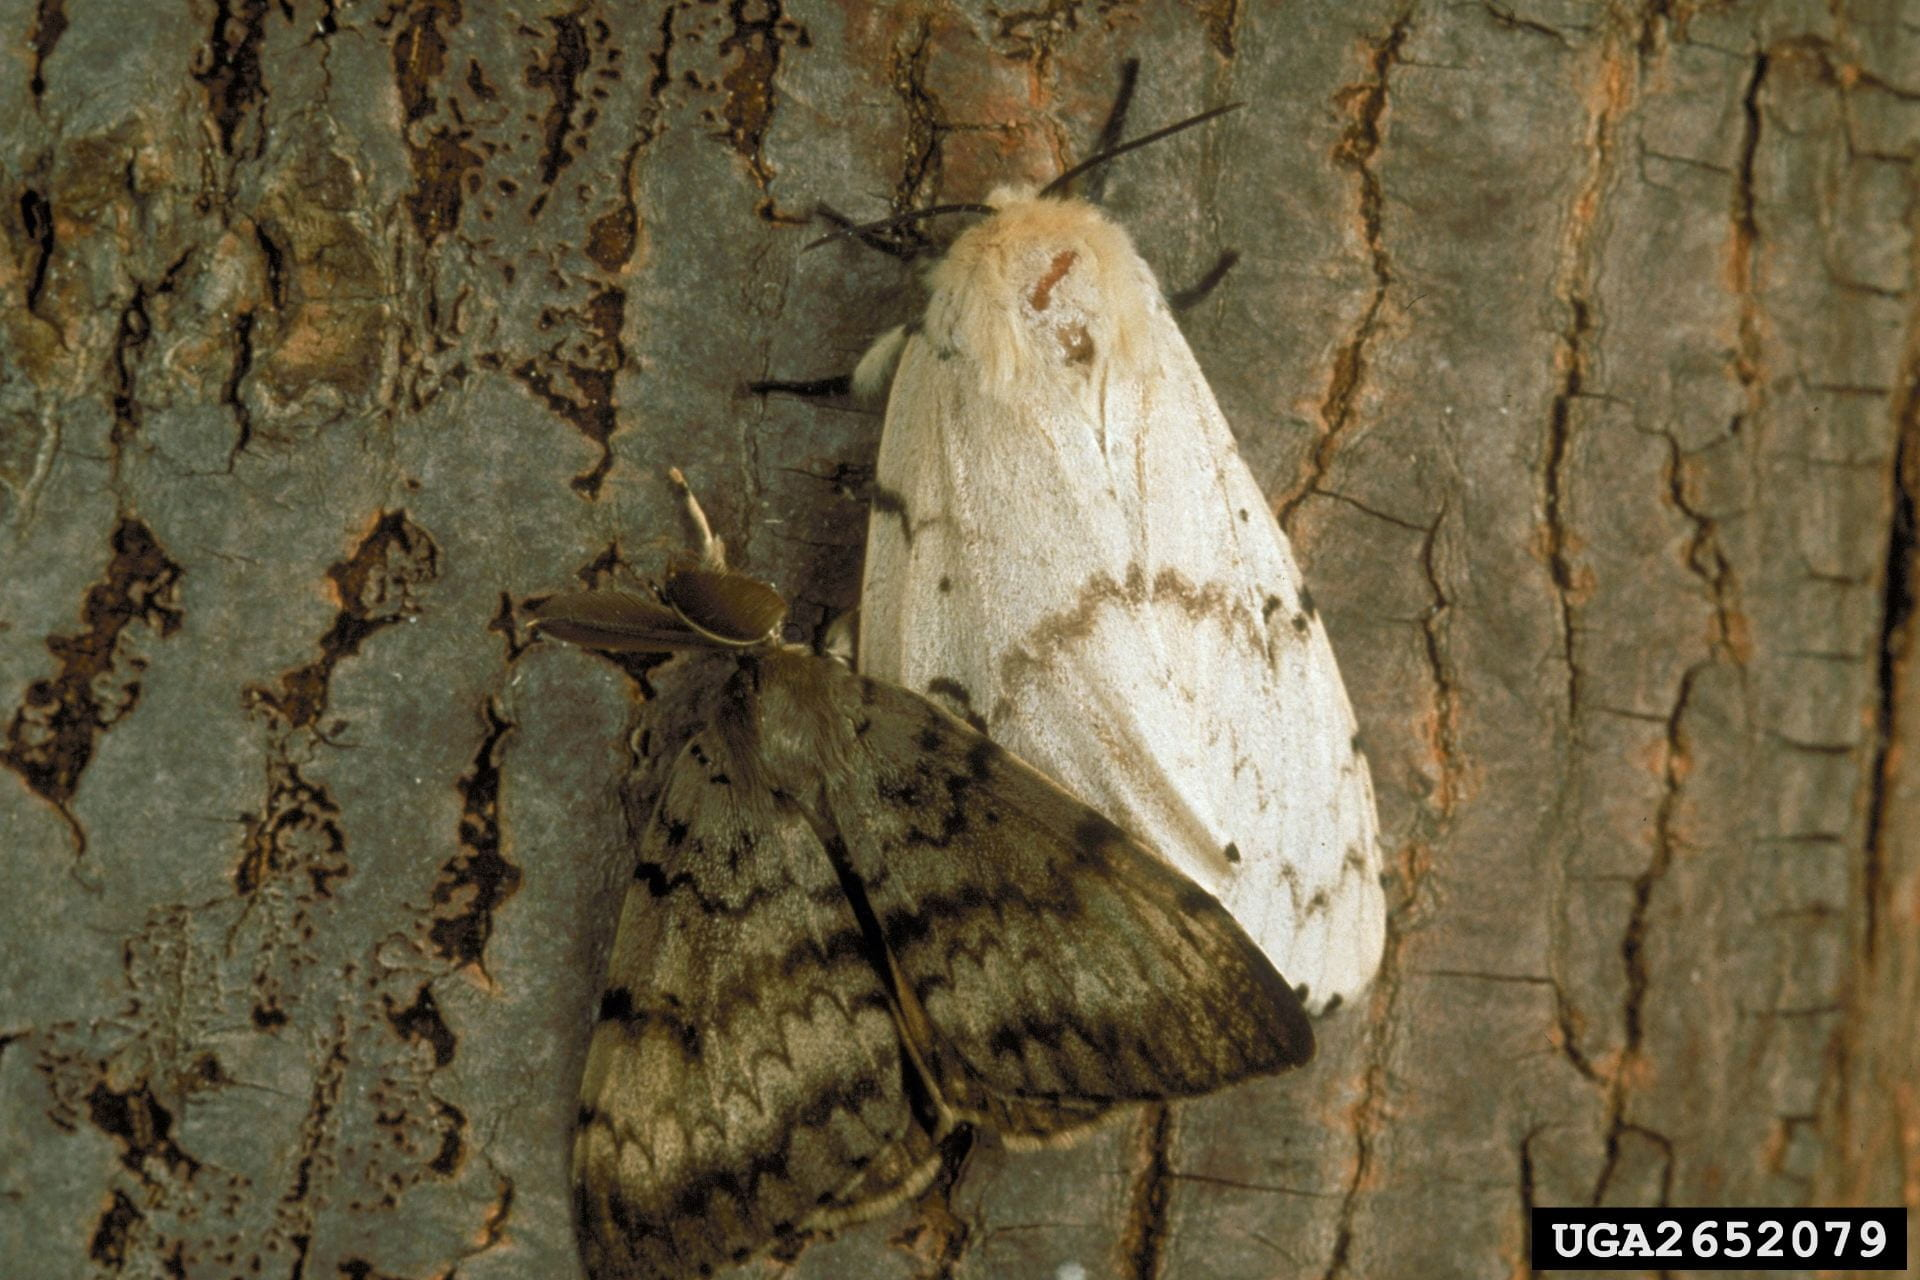 photo shows adult gypsy moths. Male is dark and female is light colored.